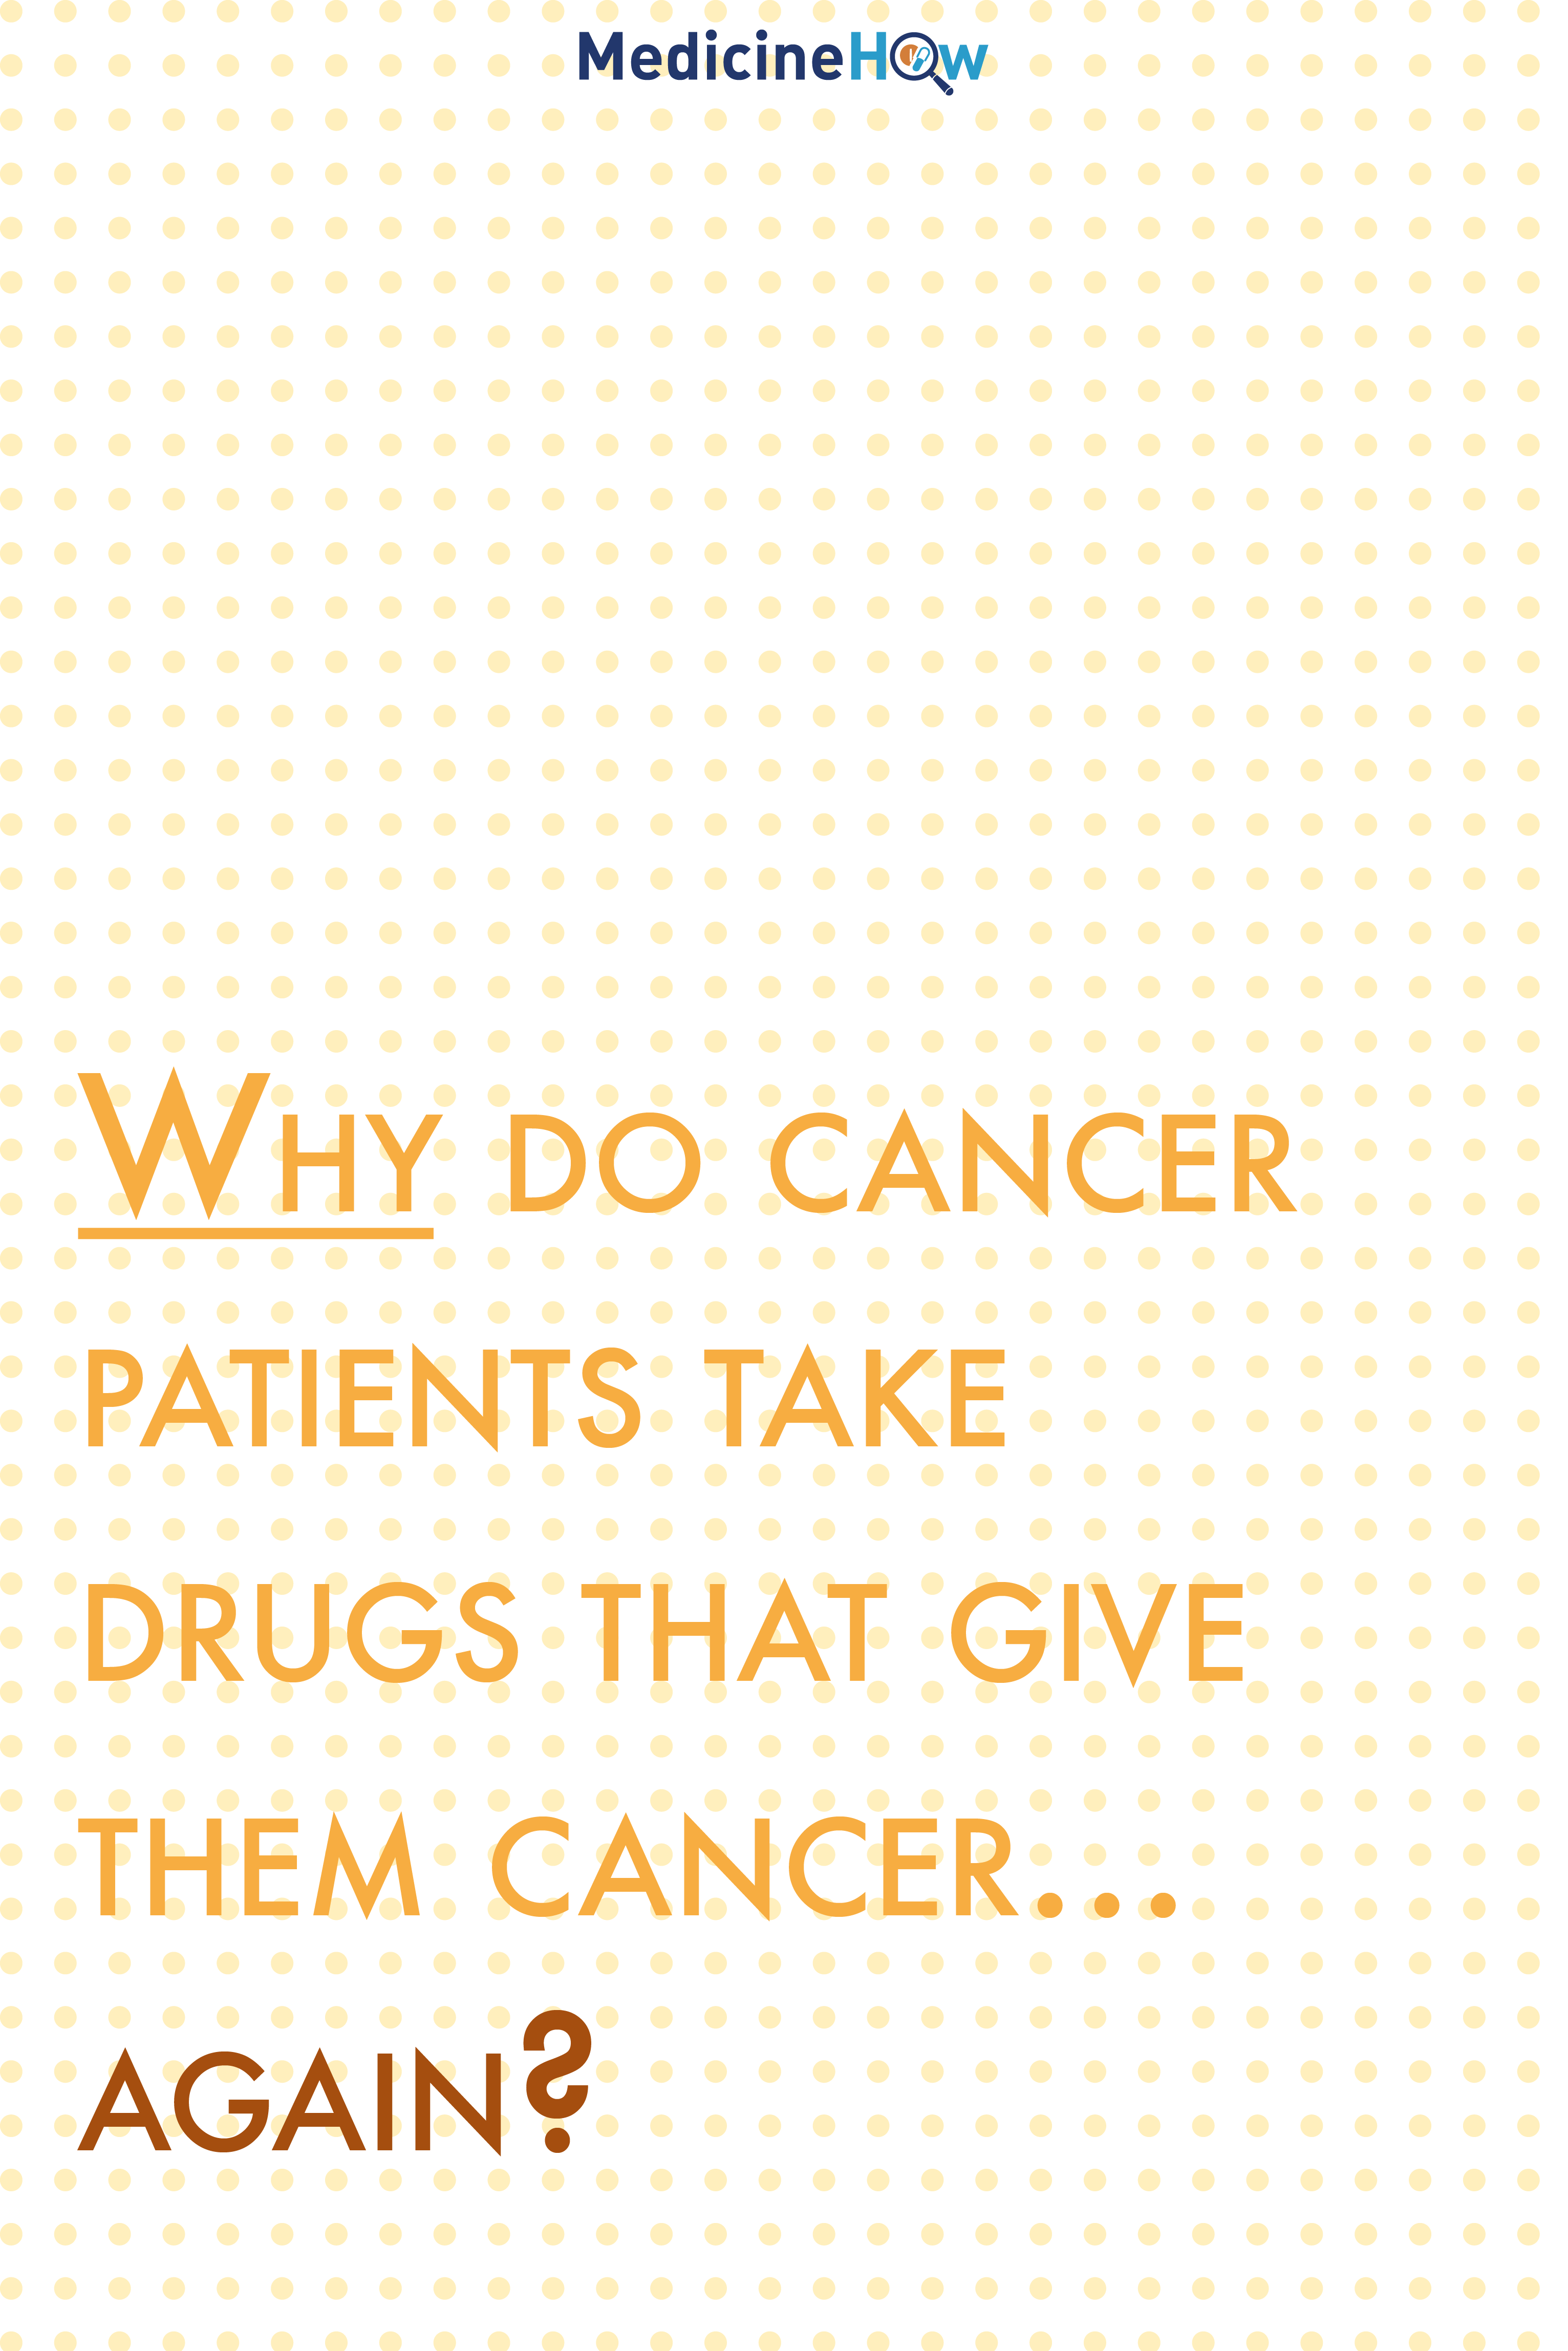 Why do cancer patients take drugs that give them cancer... again?